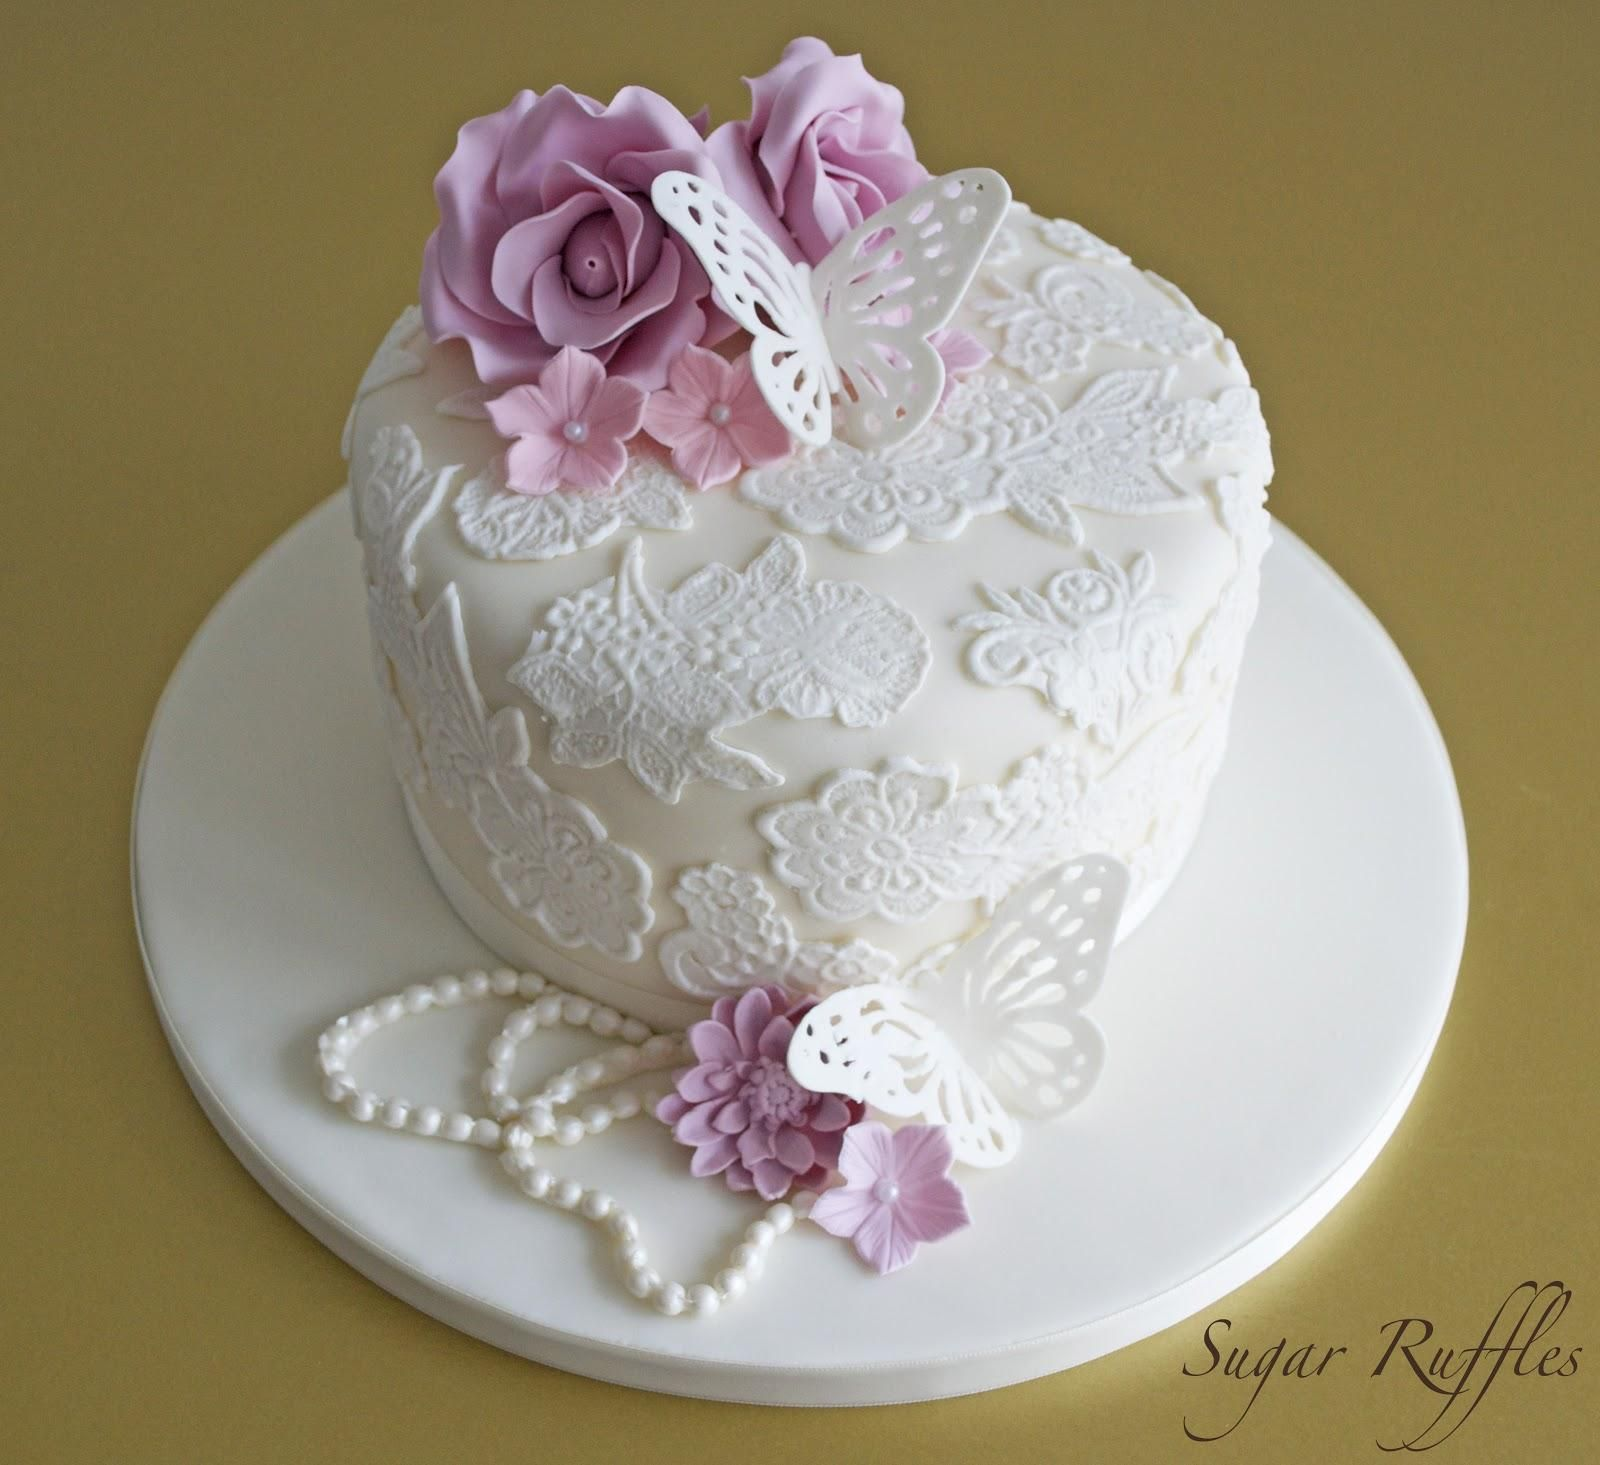 Cake Pictures For Ladies : Good Birthday Cake For Women With Flowers Part 10 ...